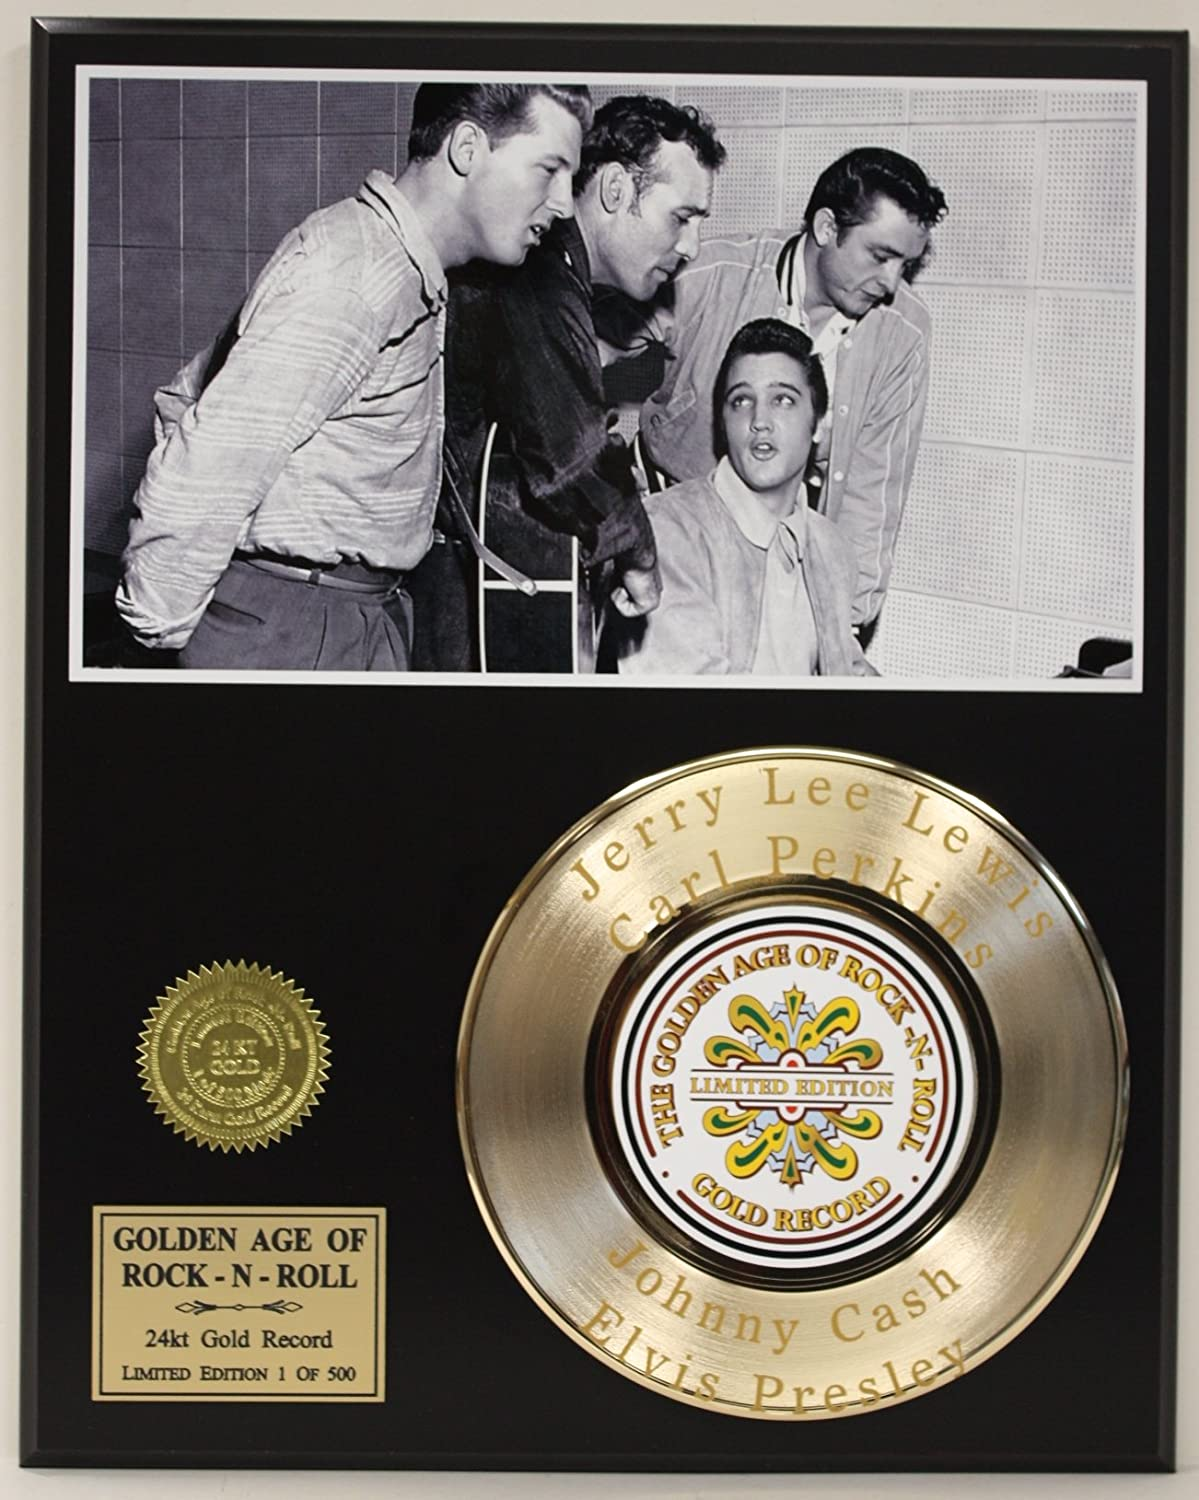 Million Dallor Quartet Laser Etched With the names Carl Perkins, Elvis Presley, Jerry Lee Lewis and Johnny Cash Limited Edition Gold Record Display Gold Record Outlet